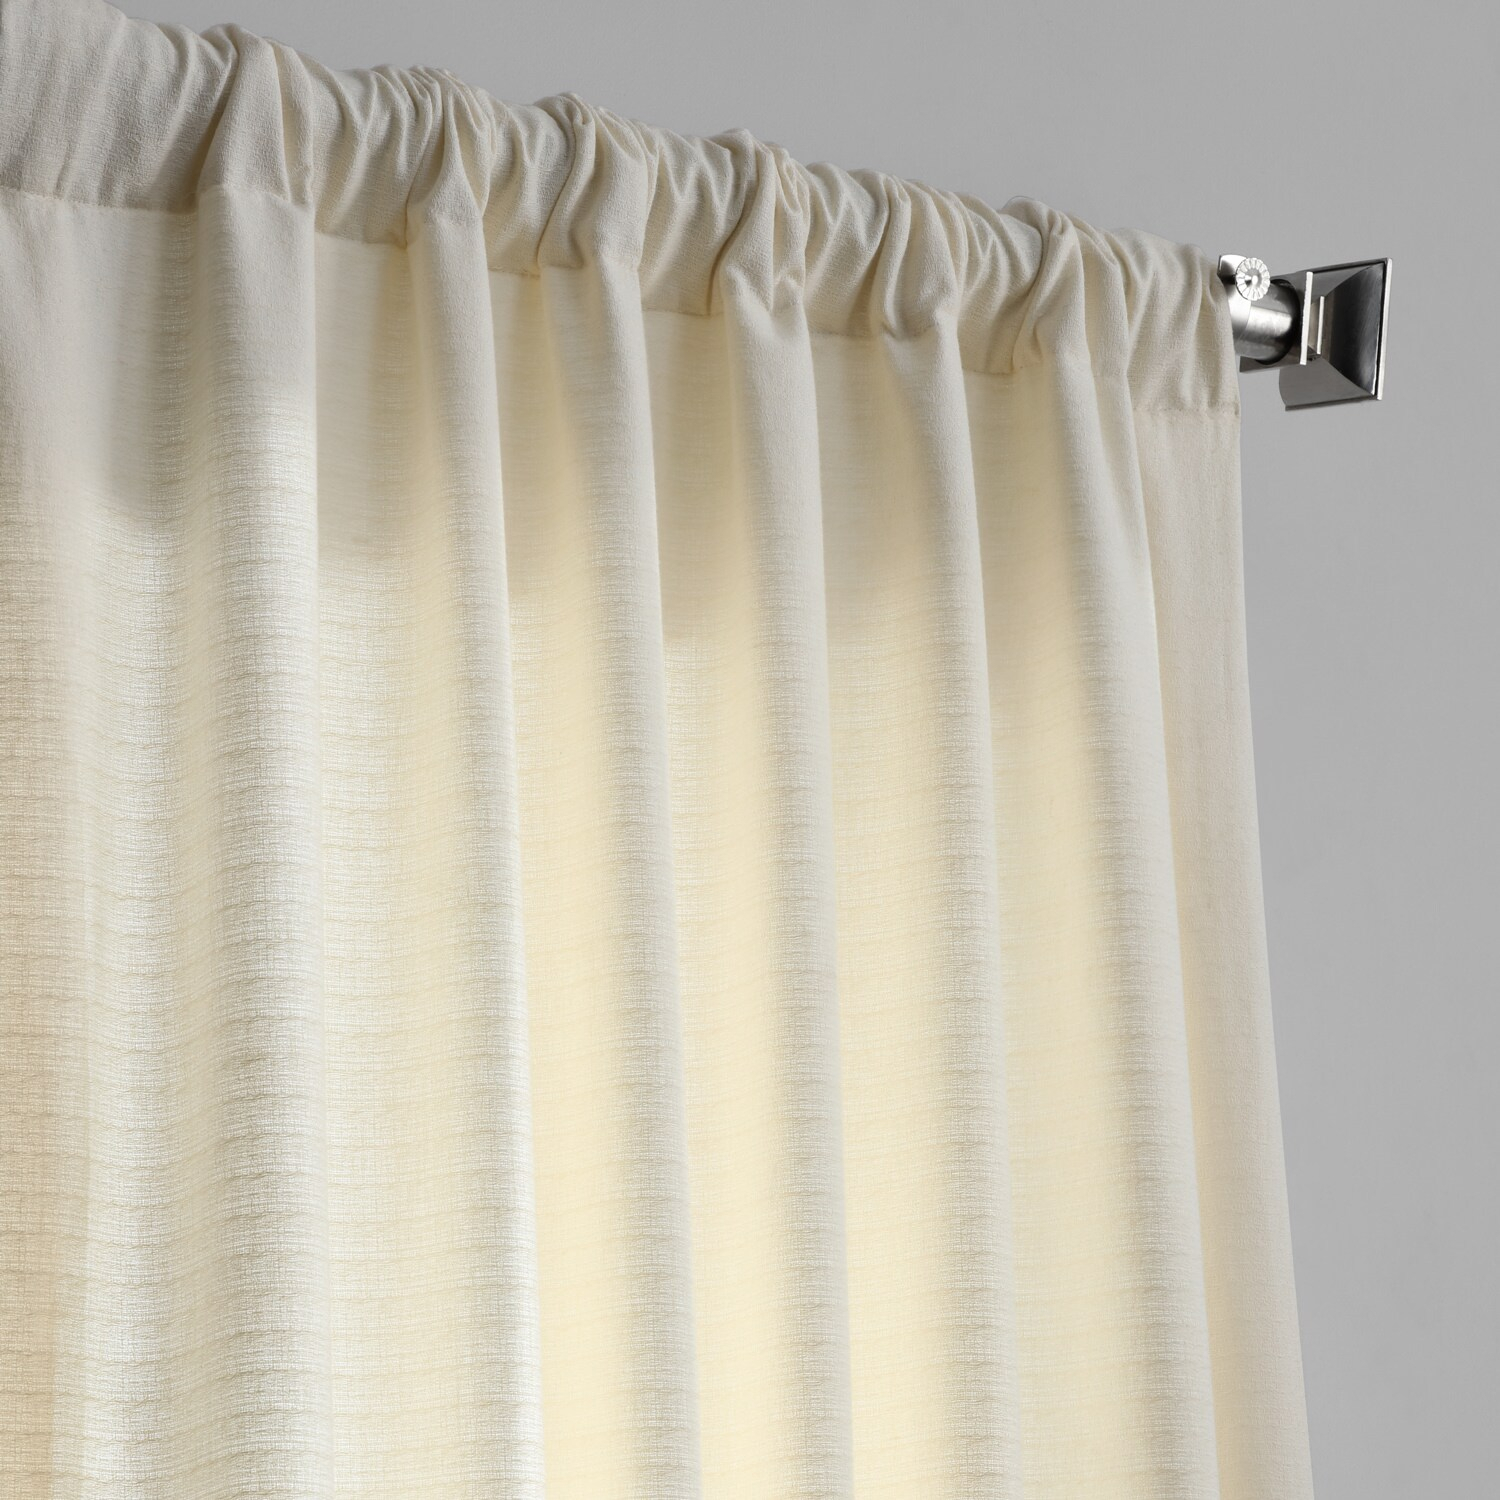 Pale Ivory Bark Weave Solid Cotton Curtain With Regard To Bark Weave Solid Cotton Curtains (View 14 of 20)